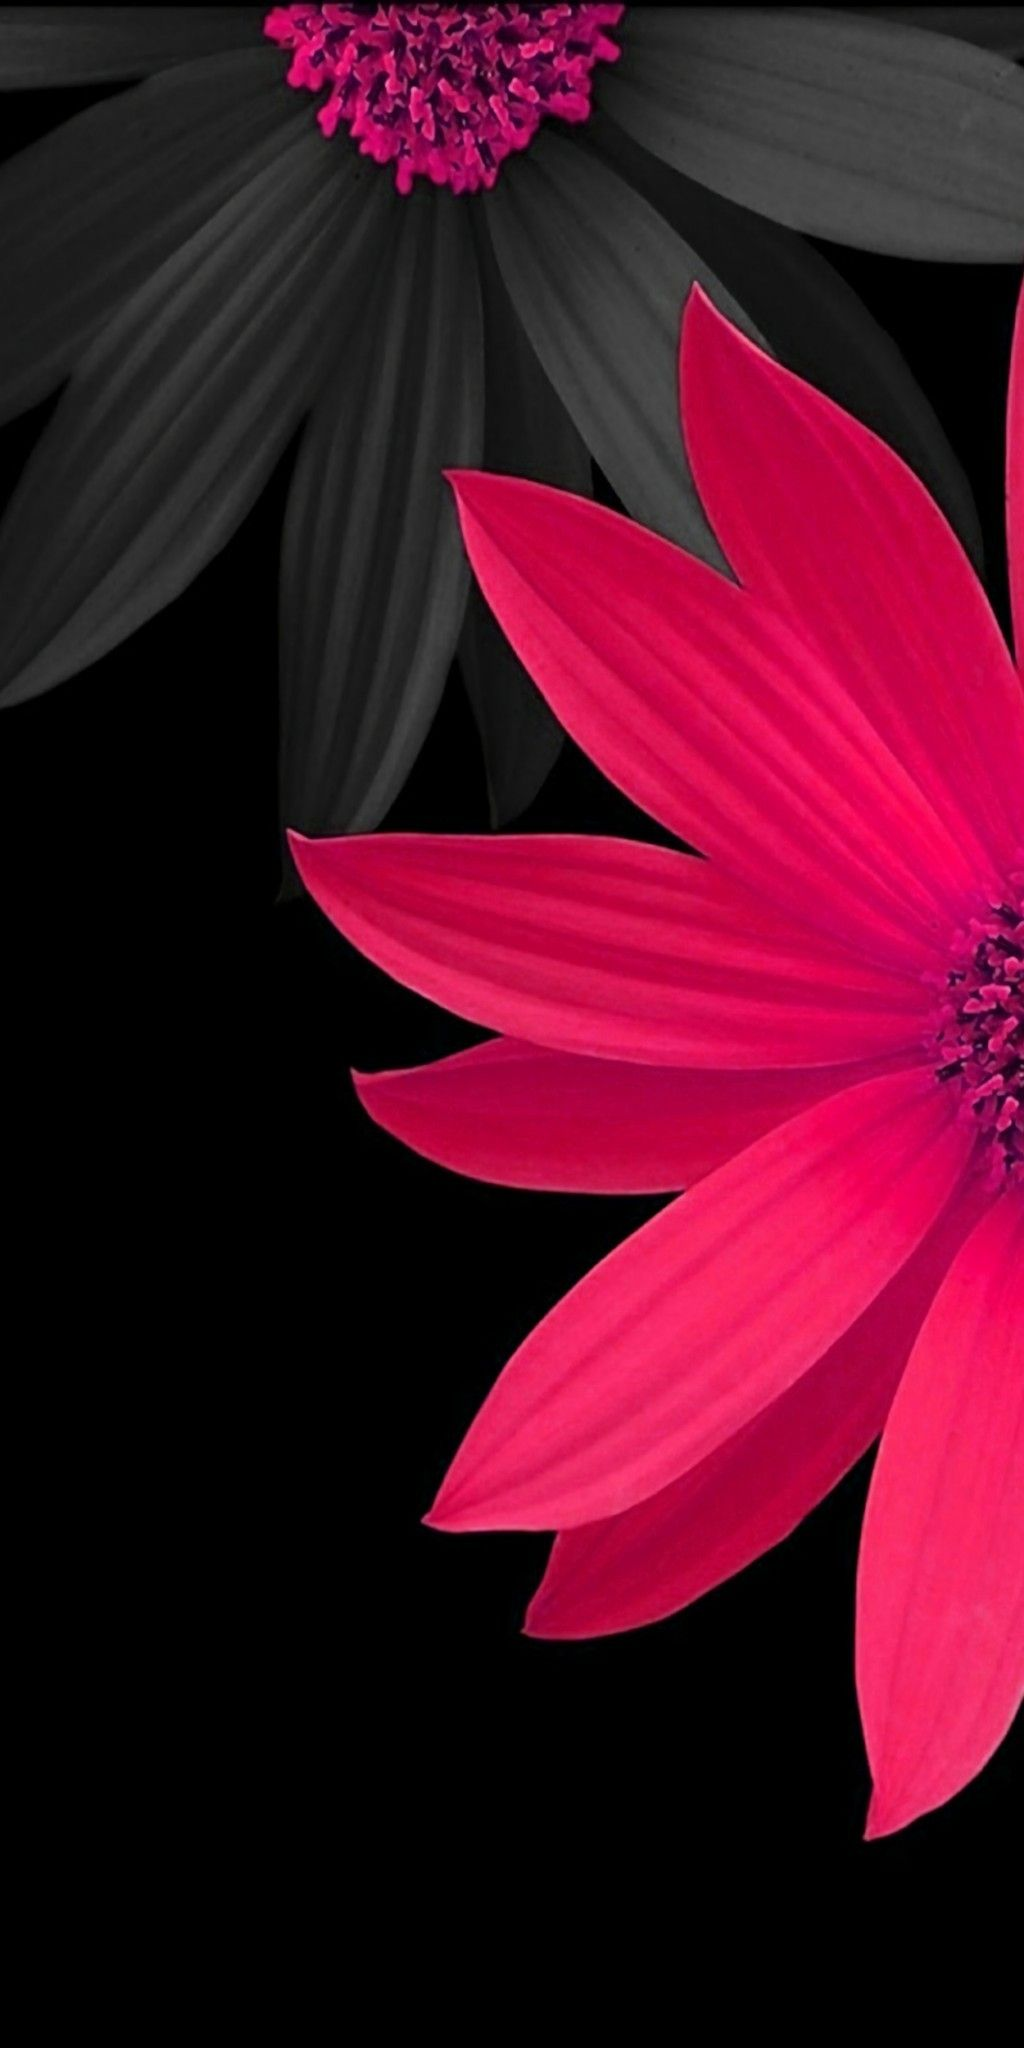 Pink and Black 3D Flowers Wallpaper Latar belakang